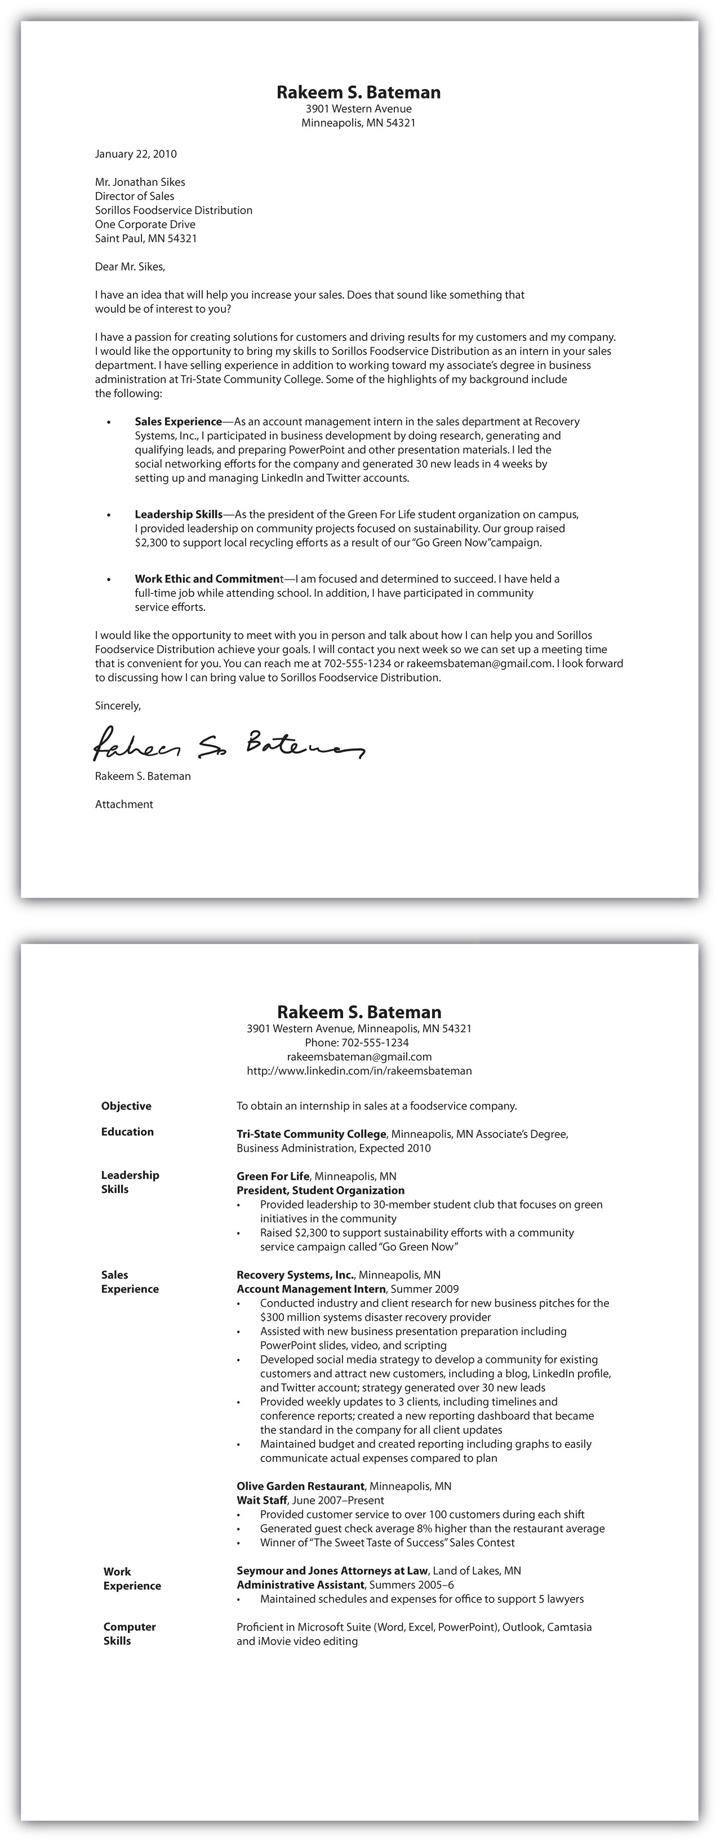 how to make a cover letter for a resume examples